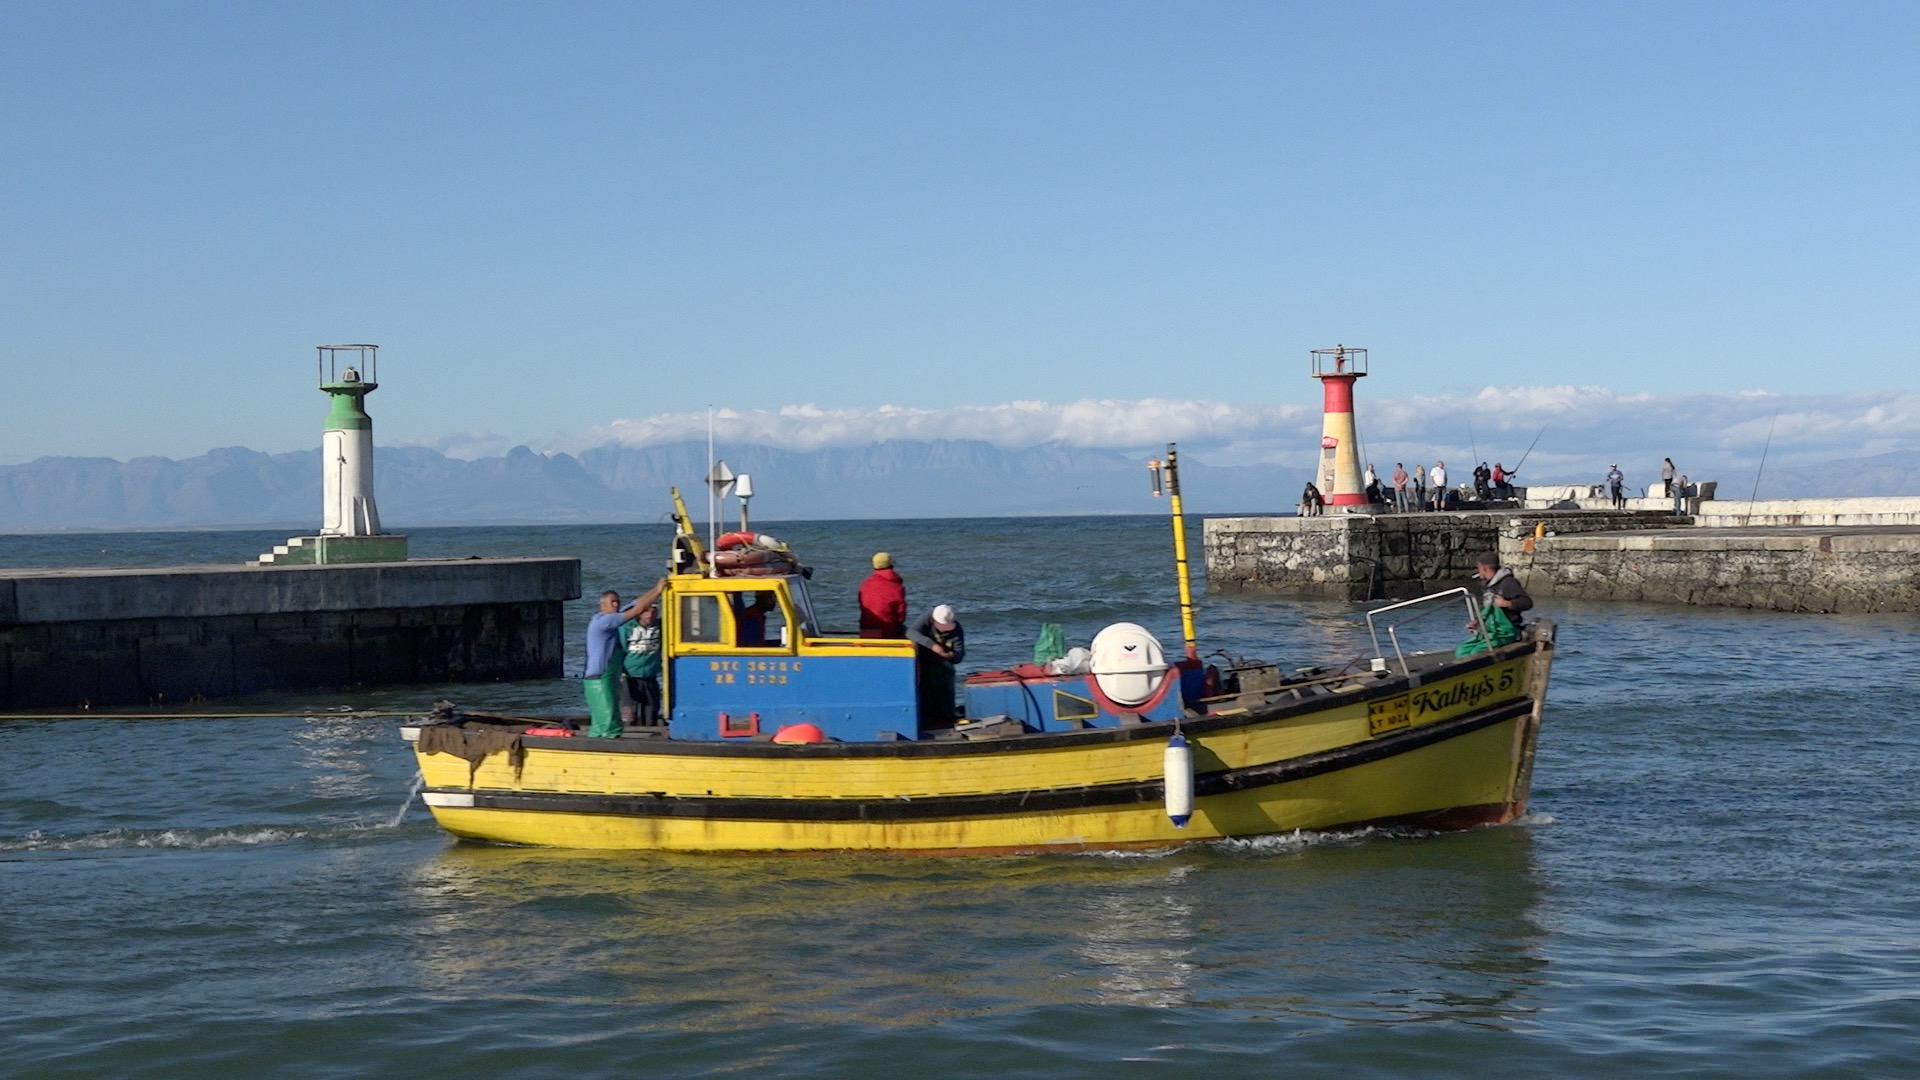 Stock video of Kalk Bay fishing boats cruising in harbour ID: 190 ...